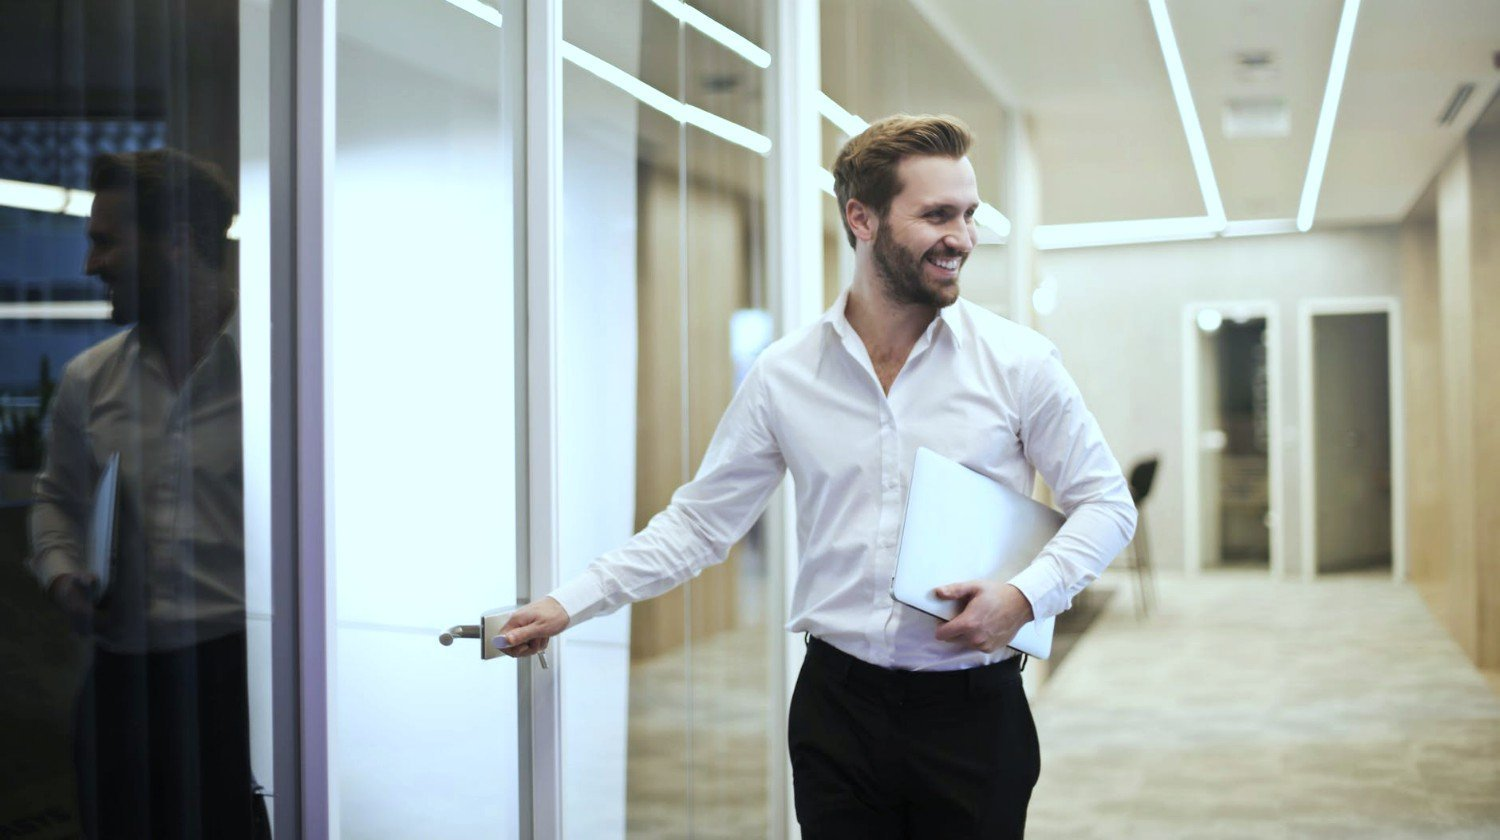 No Beard Policy At Work   7 Tips On How To Fight For Your Beard